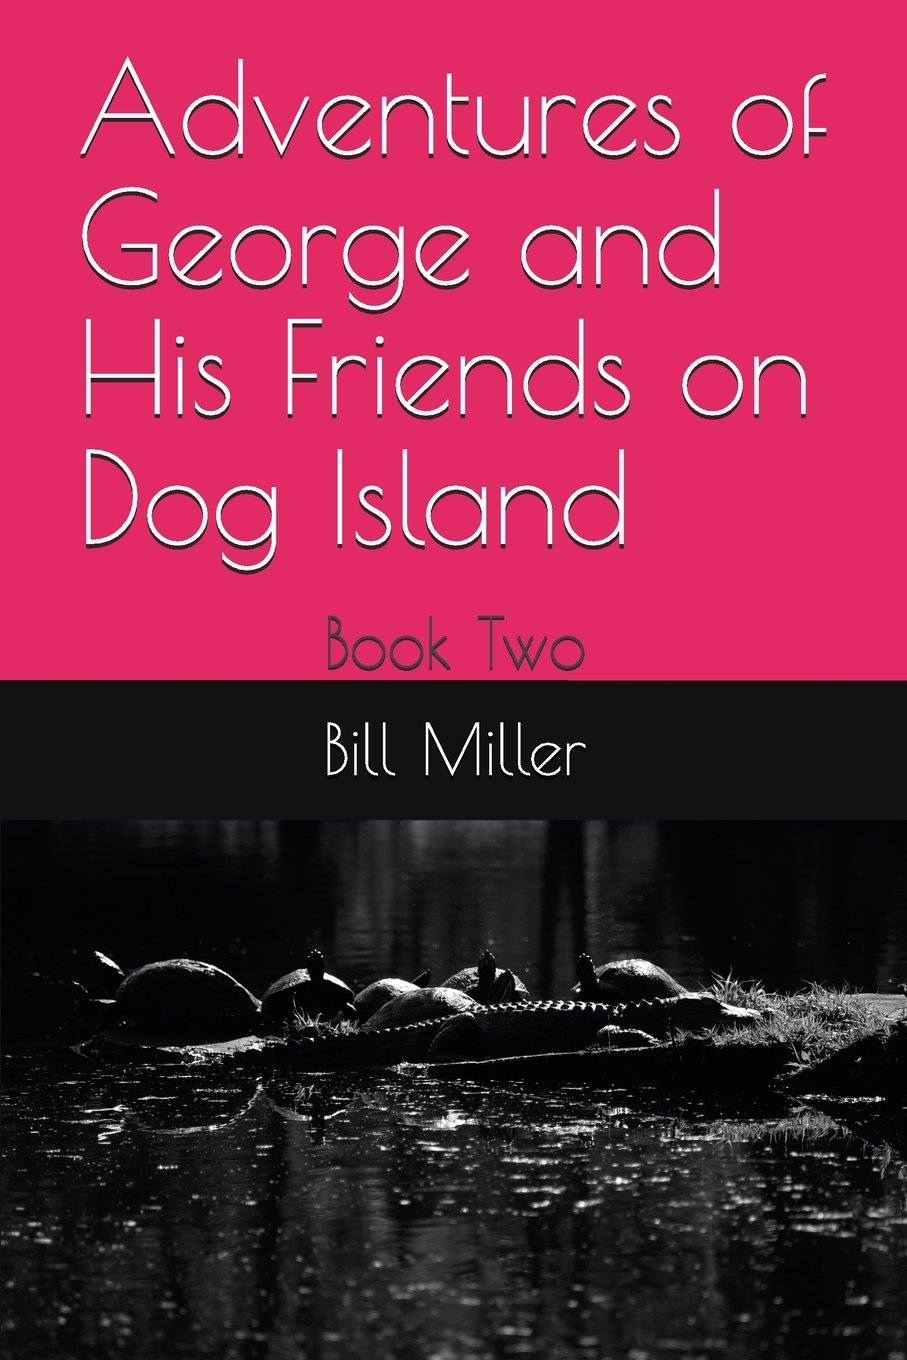 Adventures of George and His Friends on Dog Island: Book Two PDF